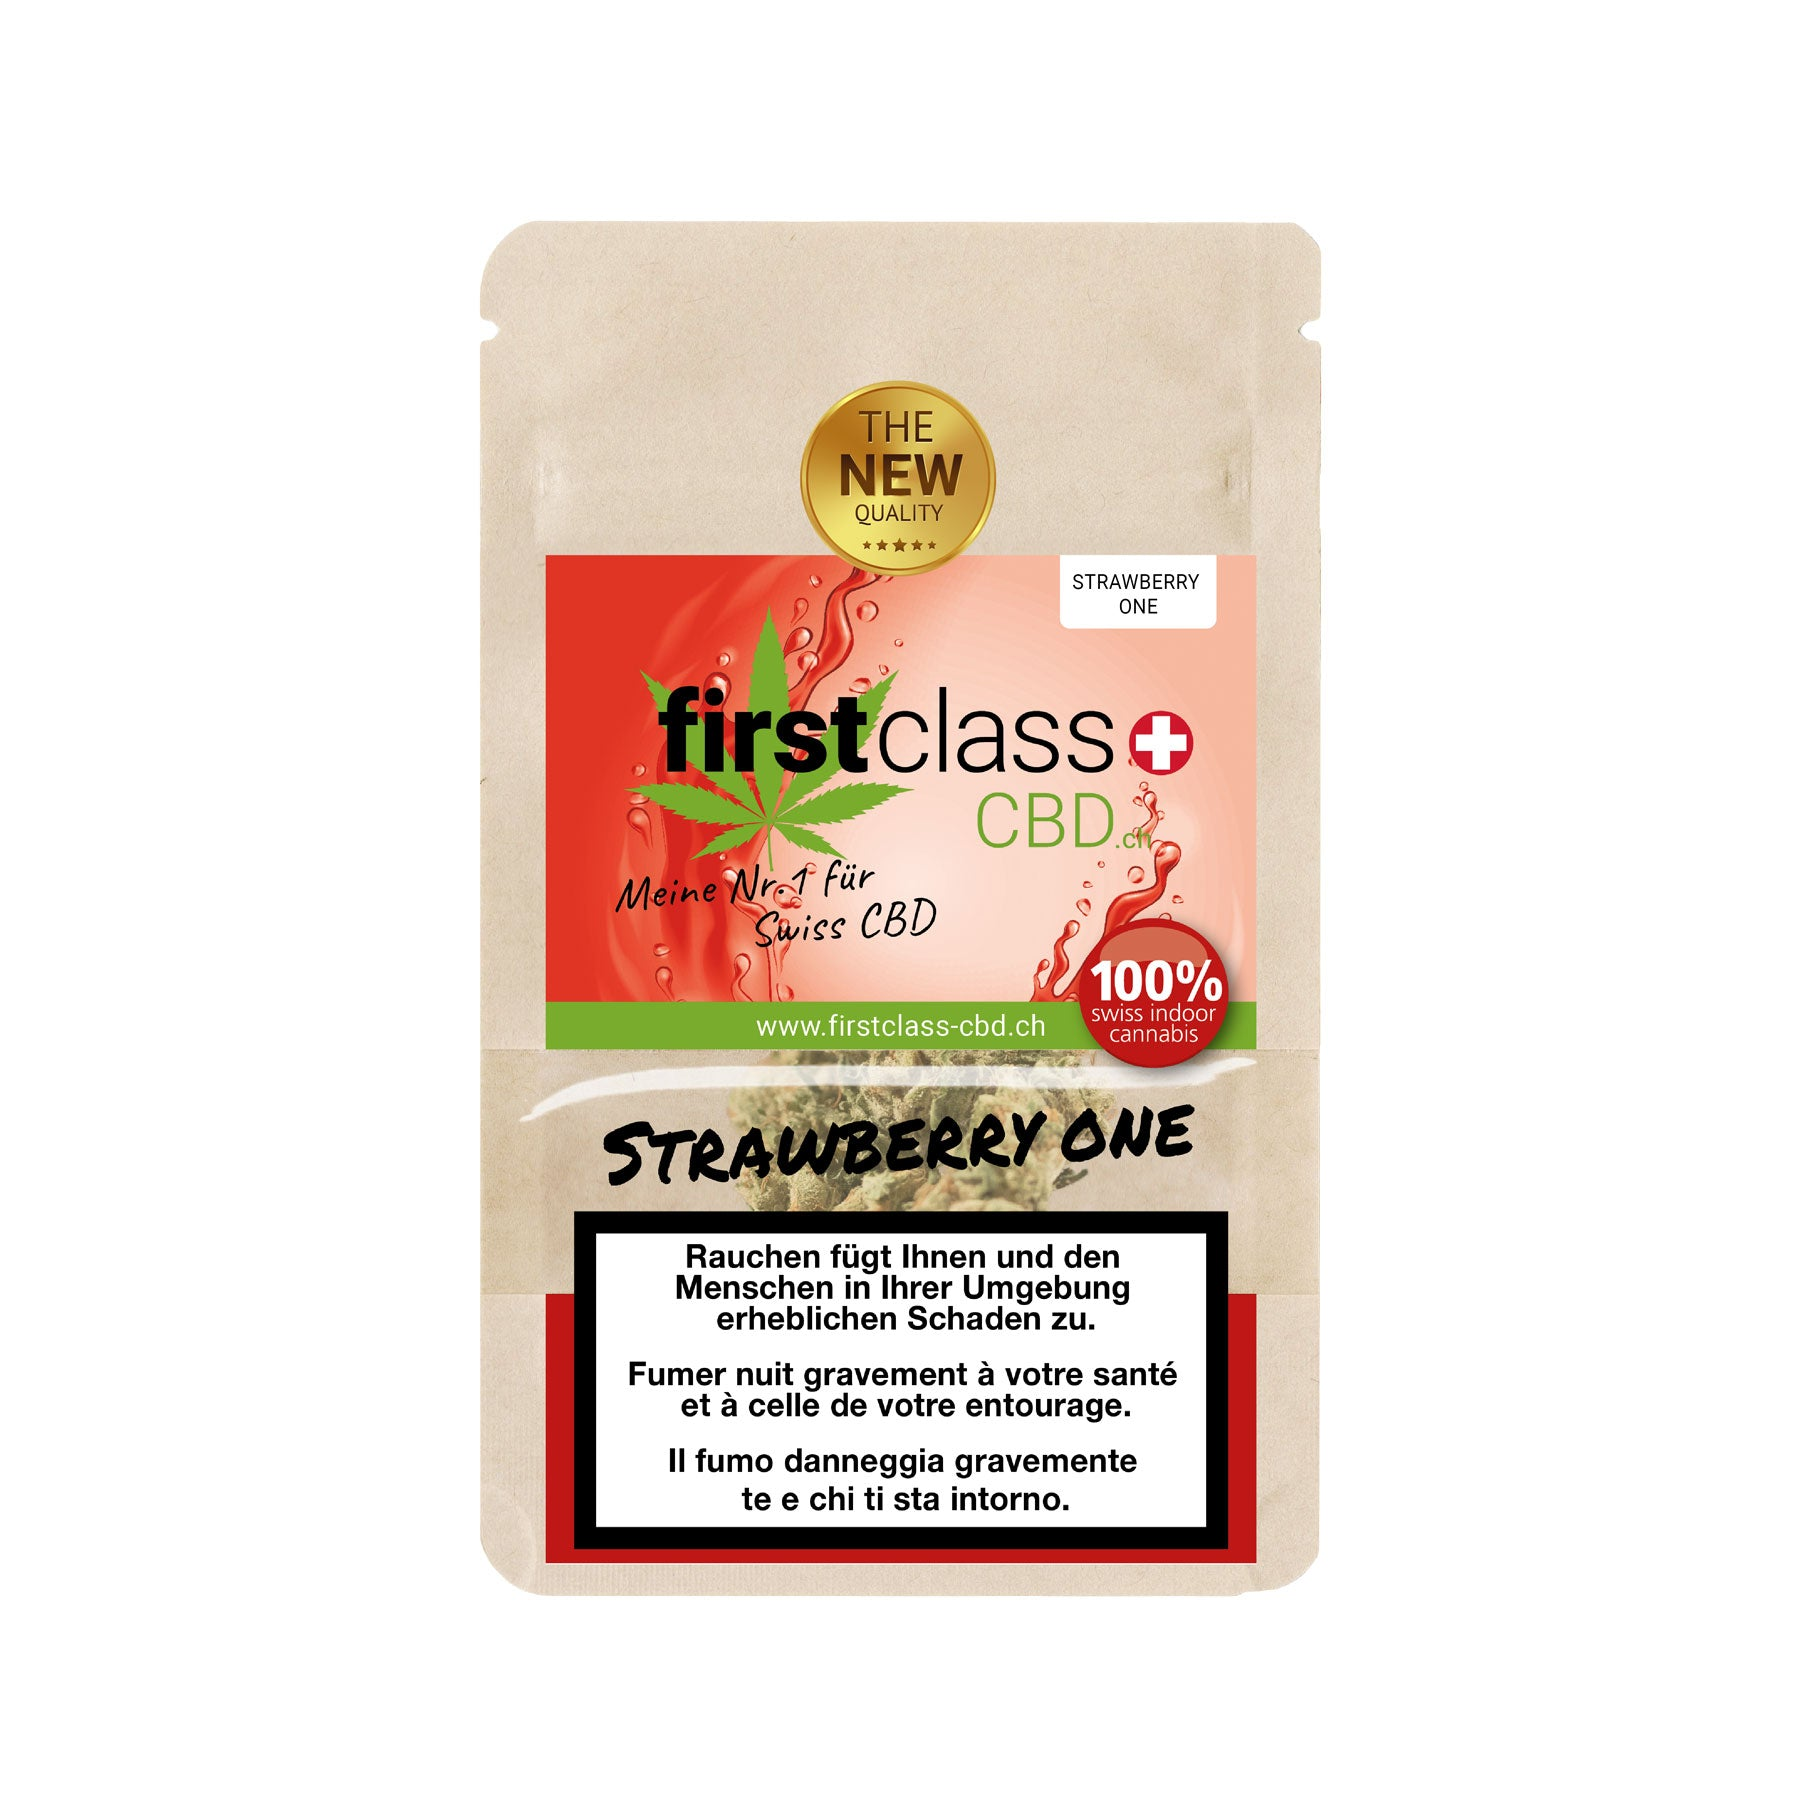 Strawberry One-CBD Cannabis-First Class CBD-Swiss CBD Shop-uWeed